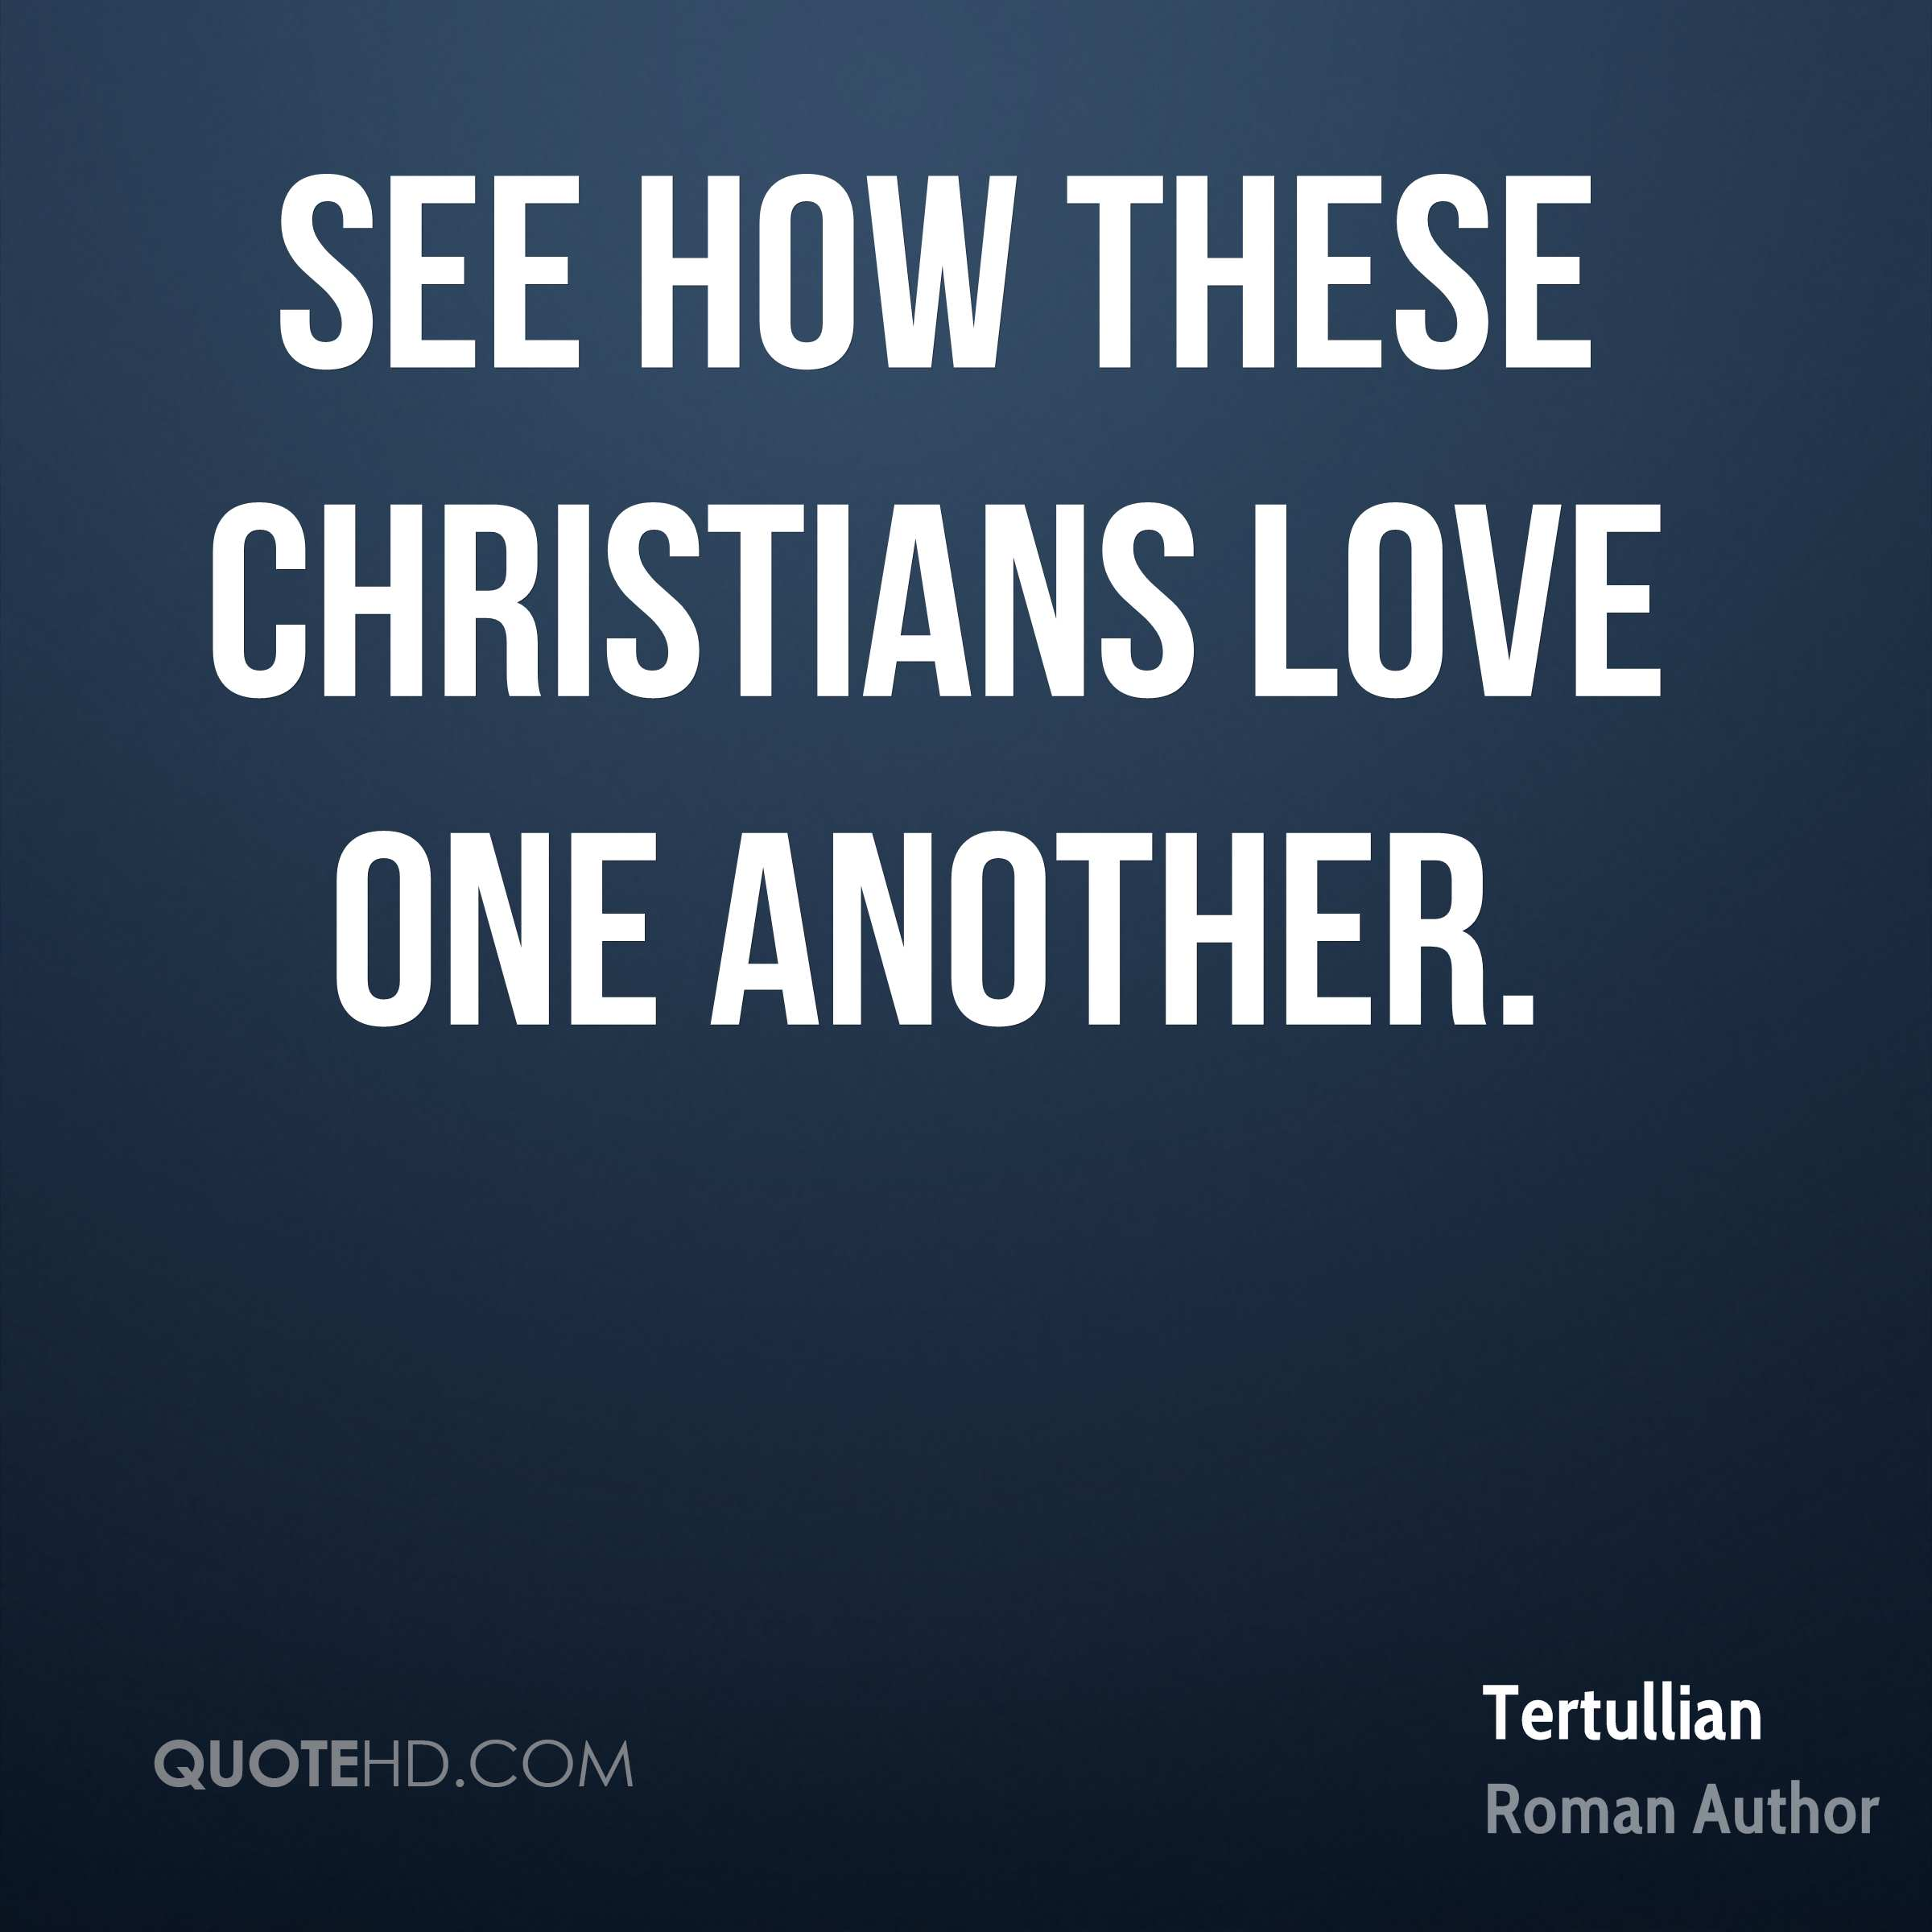 Love One Another Quotes Tertullian Quotes  Quotehd